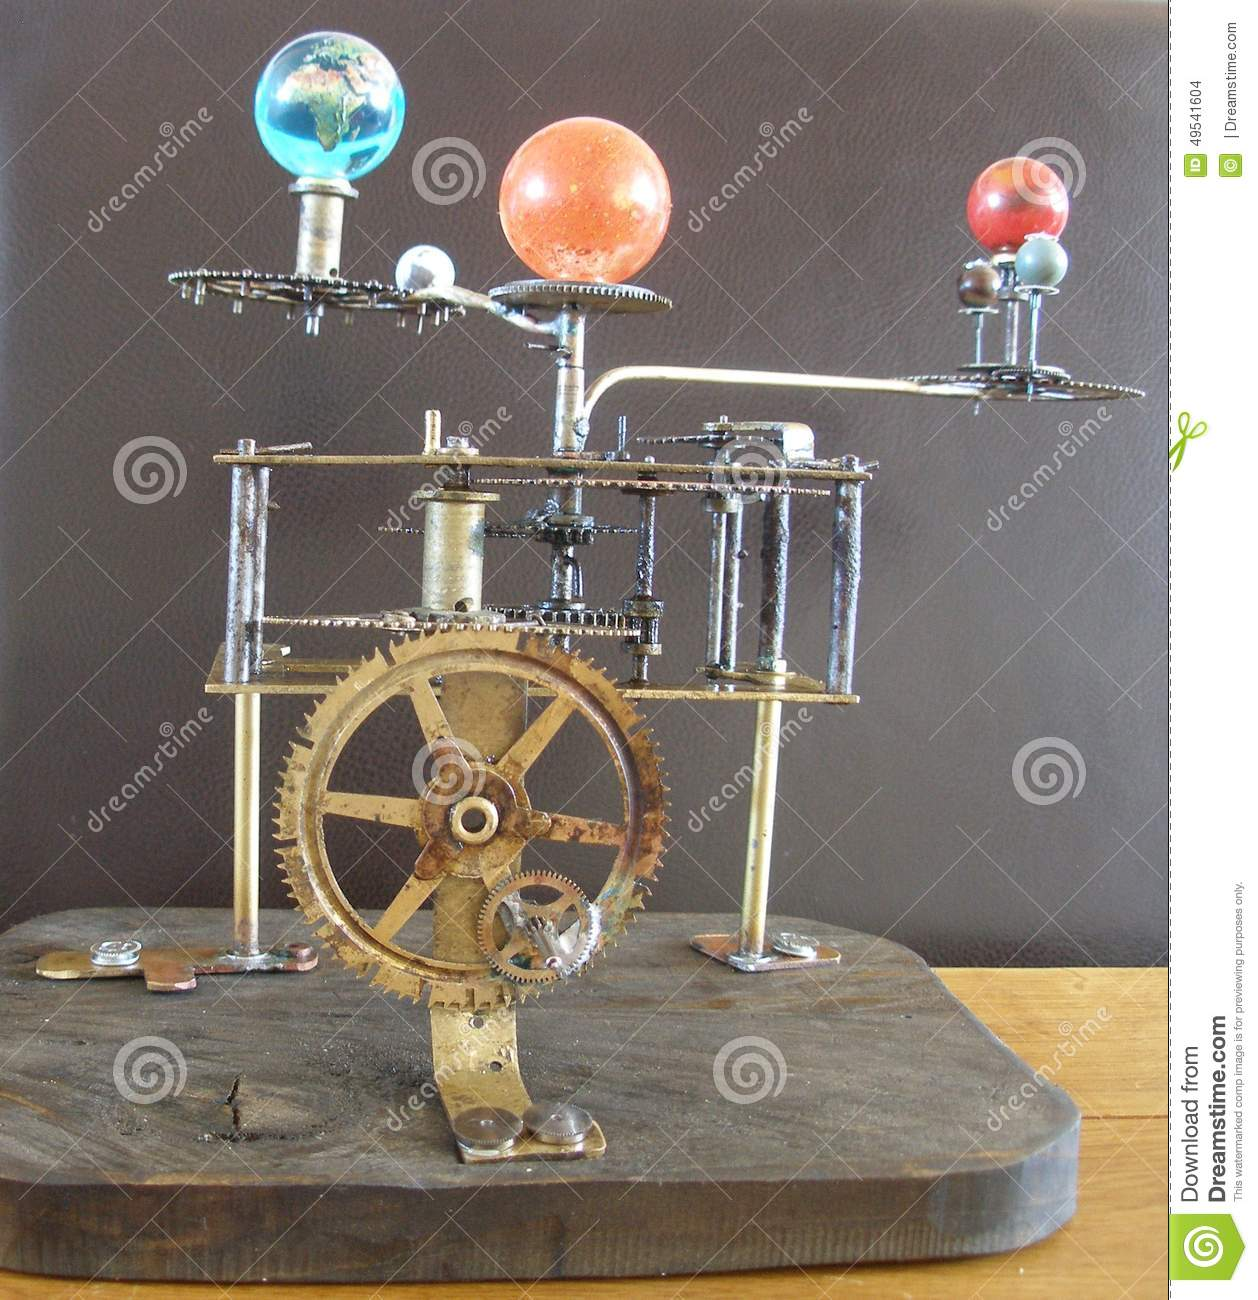 Orrery Steampunk Art Clock With Planets Of The Solar System